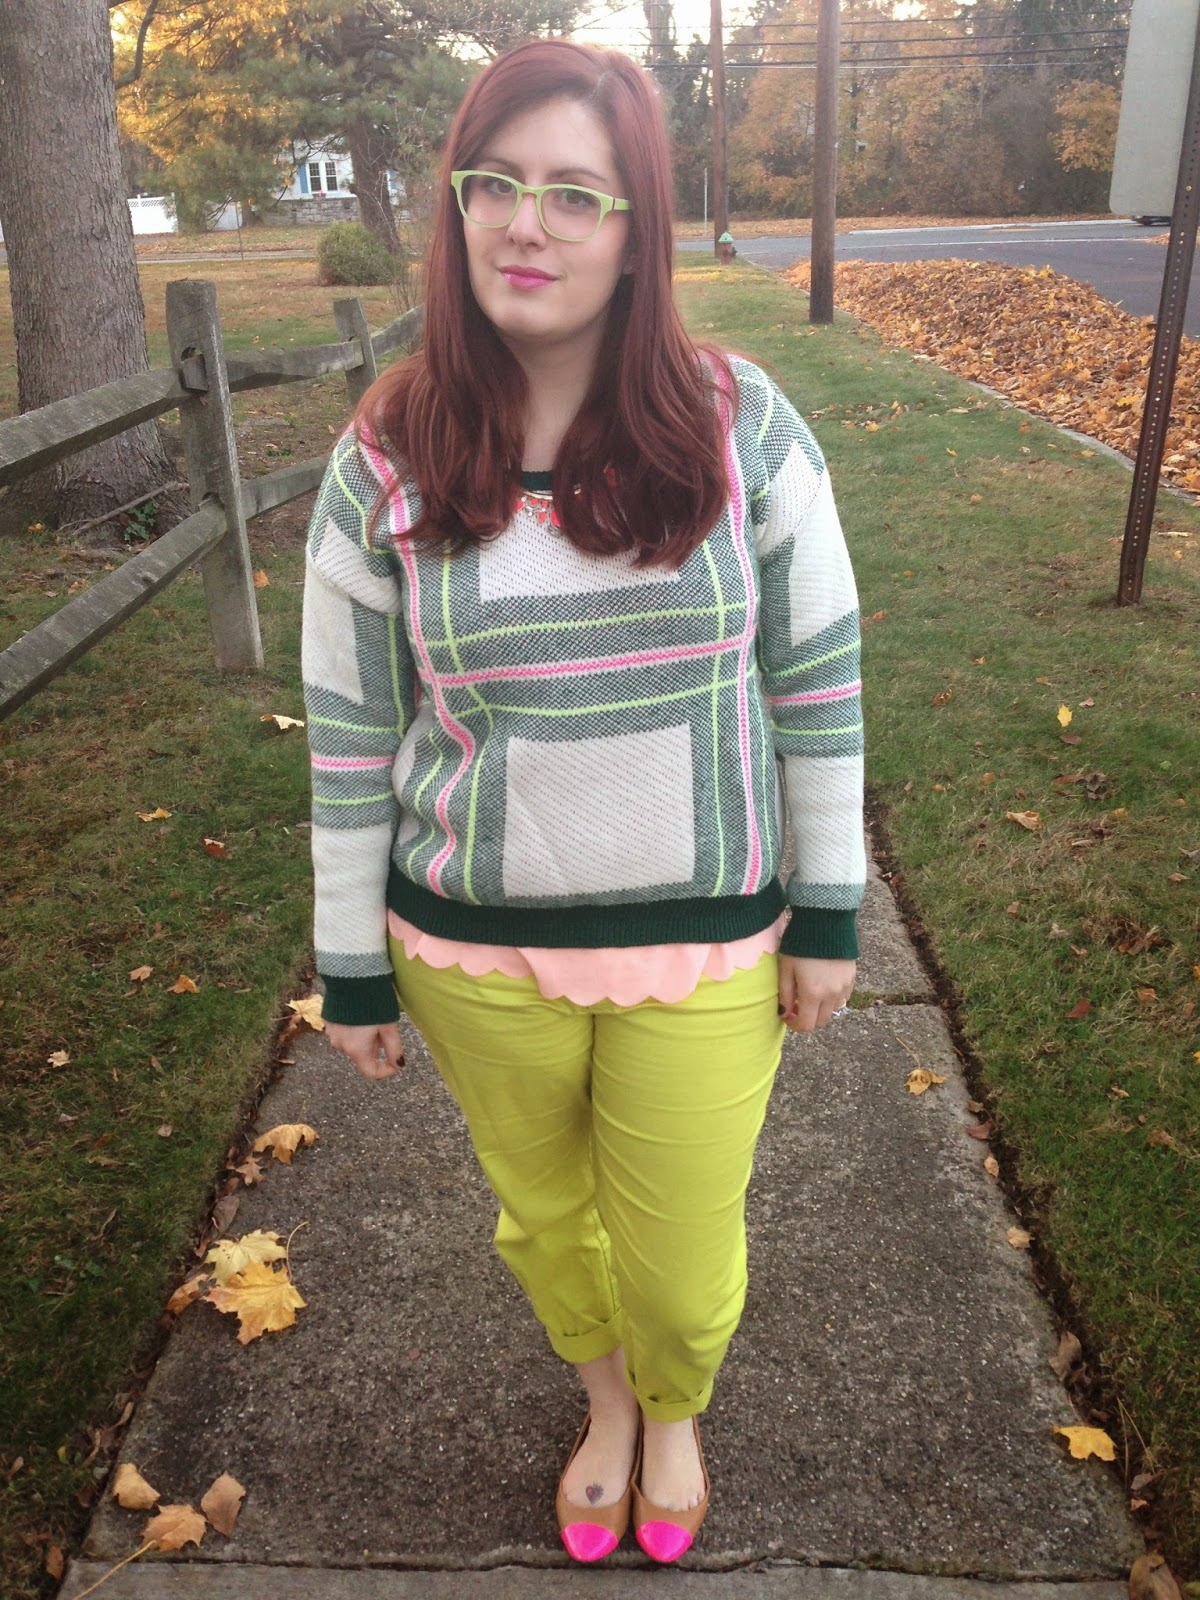 7da8cd54070 I went with the same outfit but different neon pants   cap toe flats!